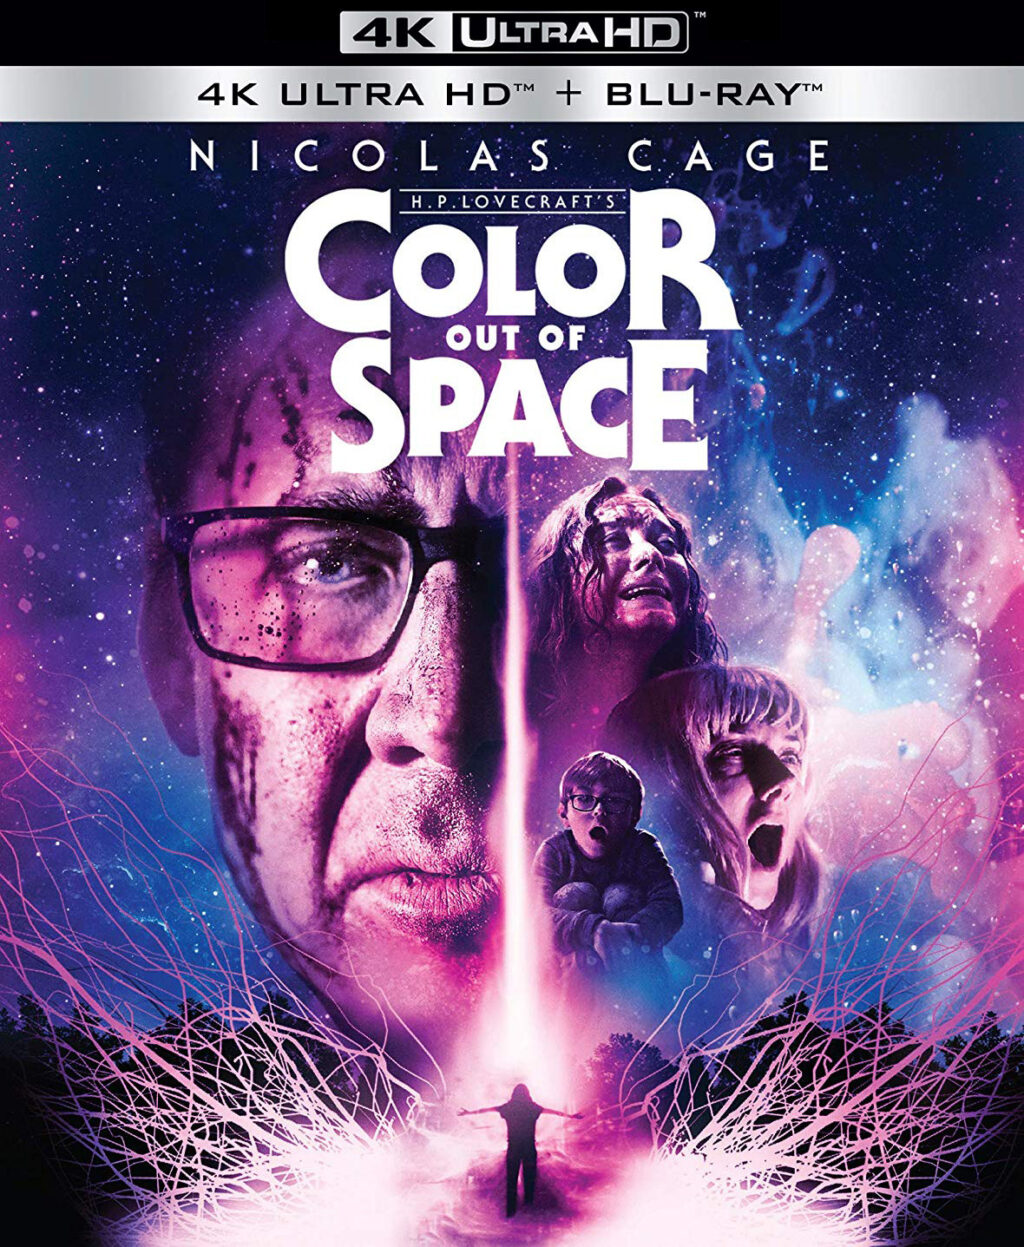 Color Out of Space Blu ray 1024x1247 - Contest: Win a Copy of COLOR OUT OF SPACE on 4K UHD/BD